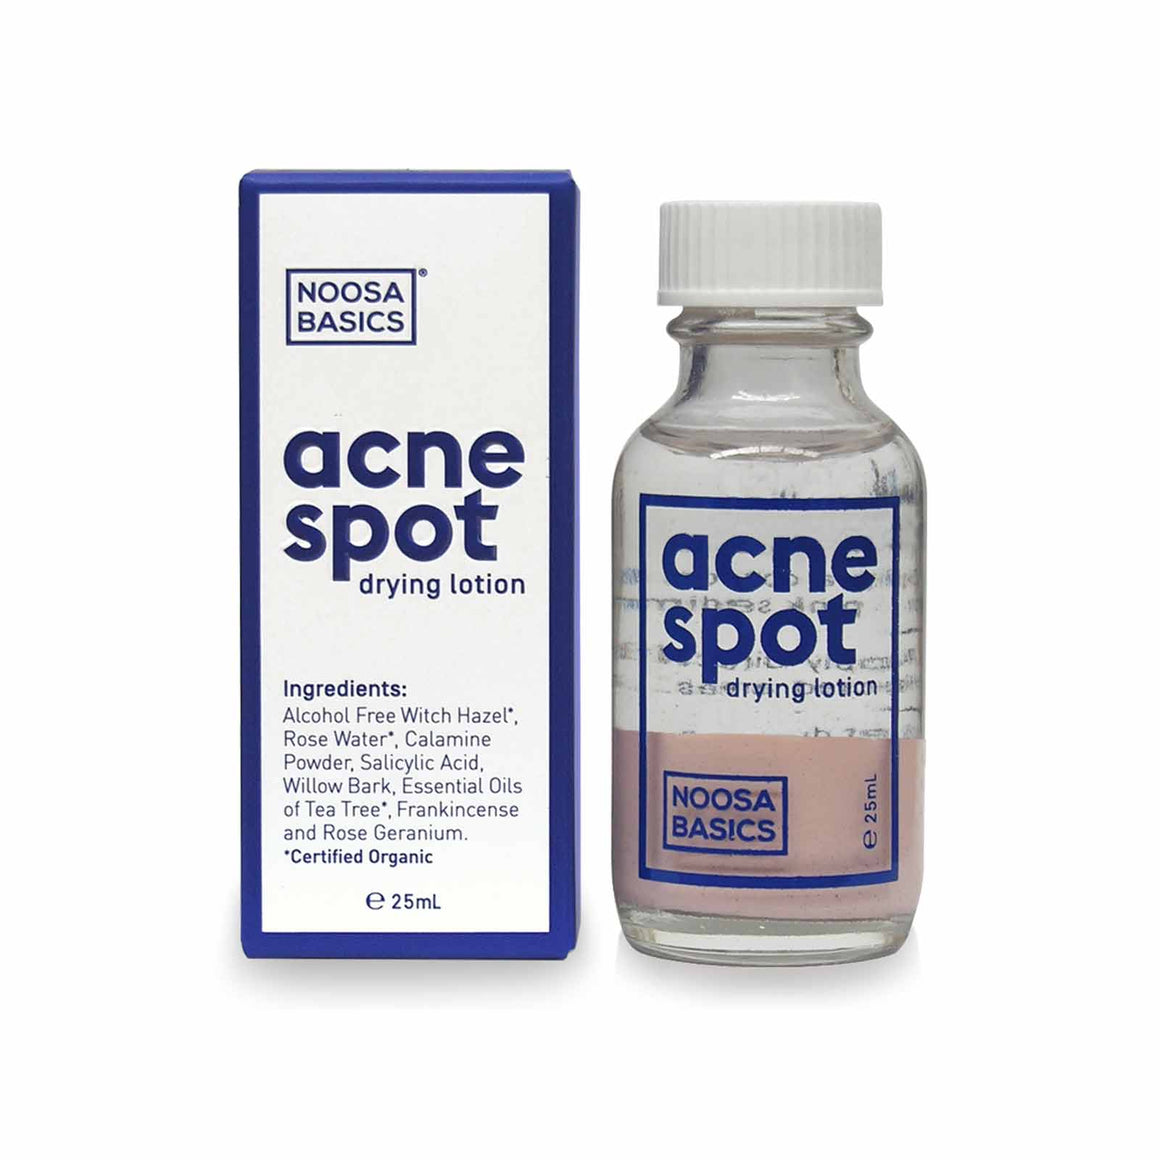 Noosa Basics Acne Spot Drying Lotion - 25ml